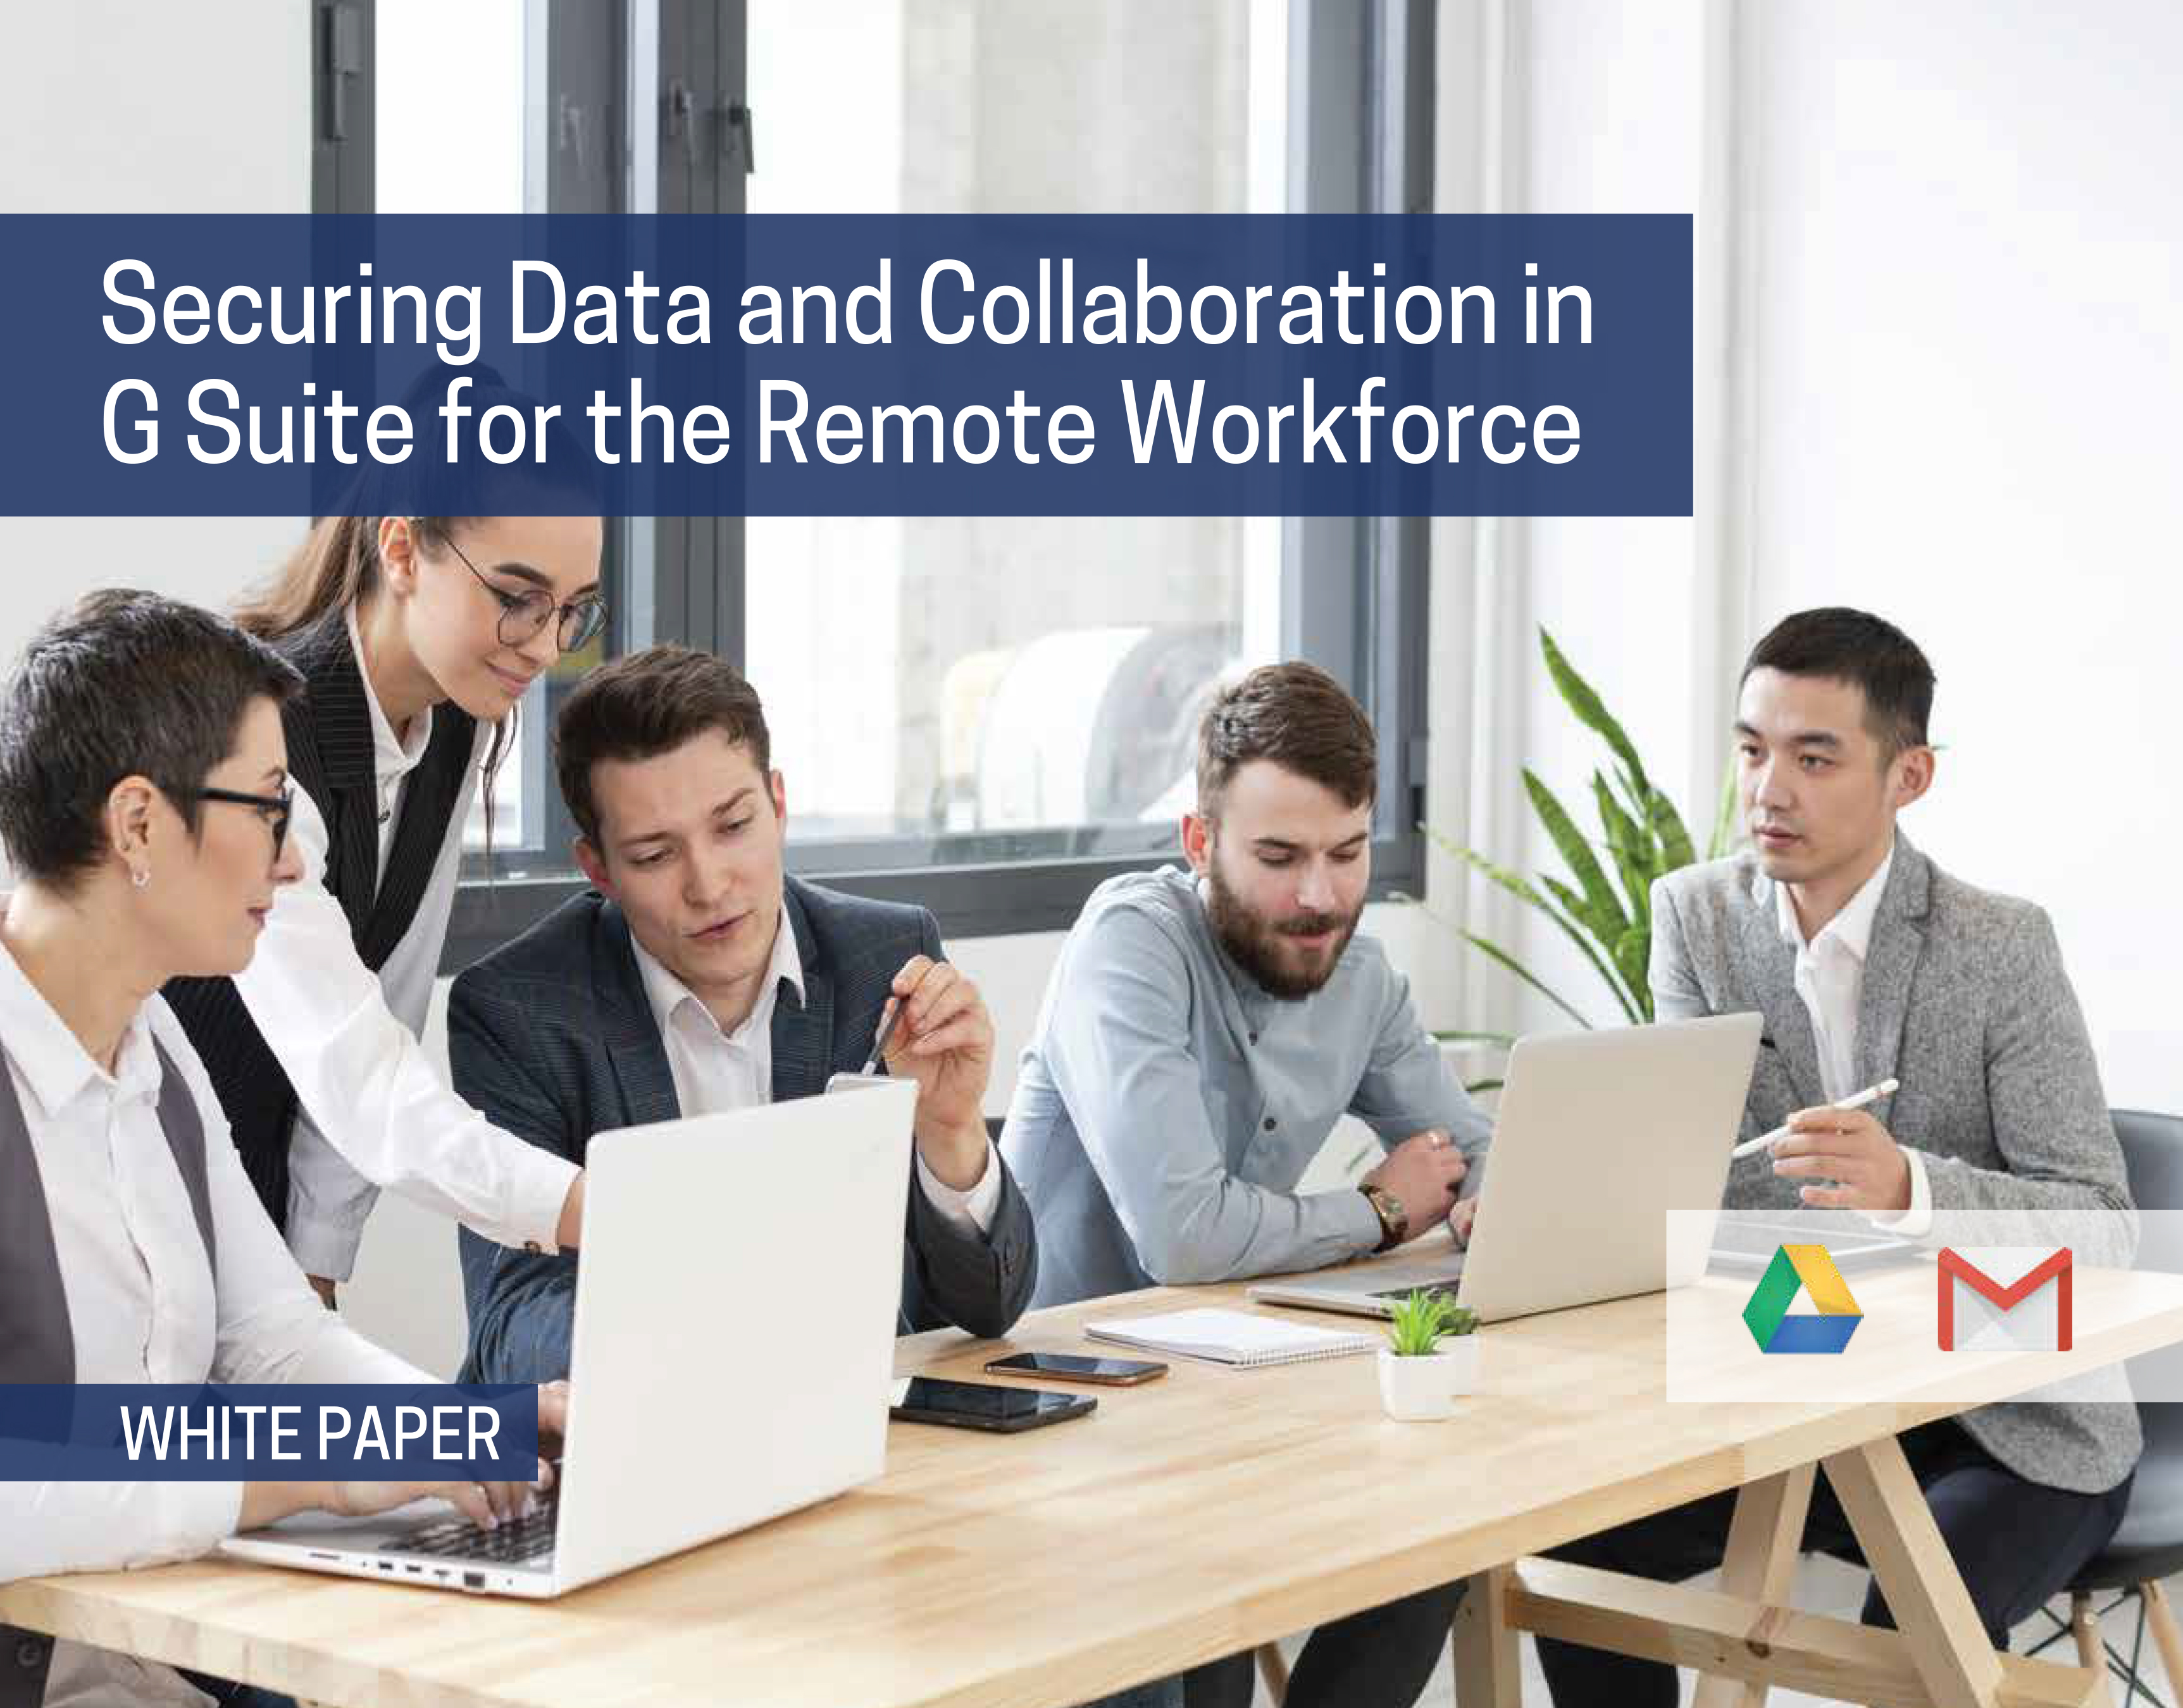 Securing Data and Collaboration in G Suite for the Remote Workforce_6-1 (1)